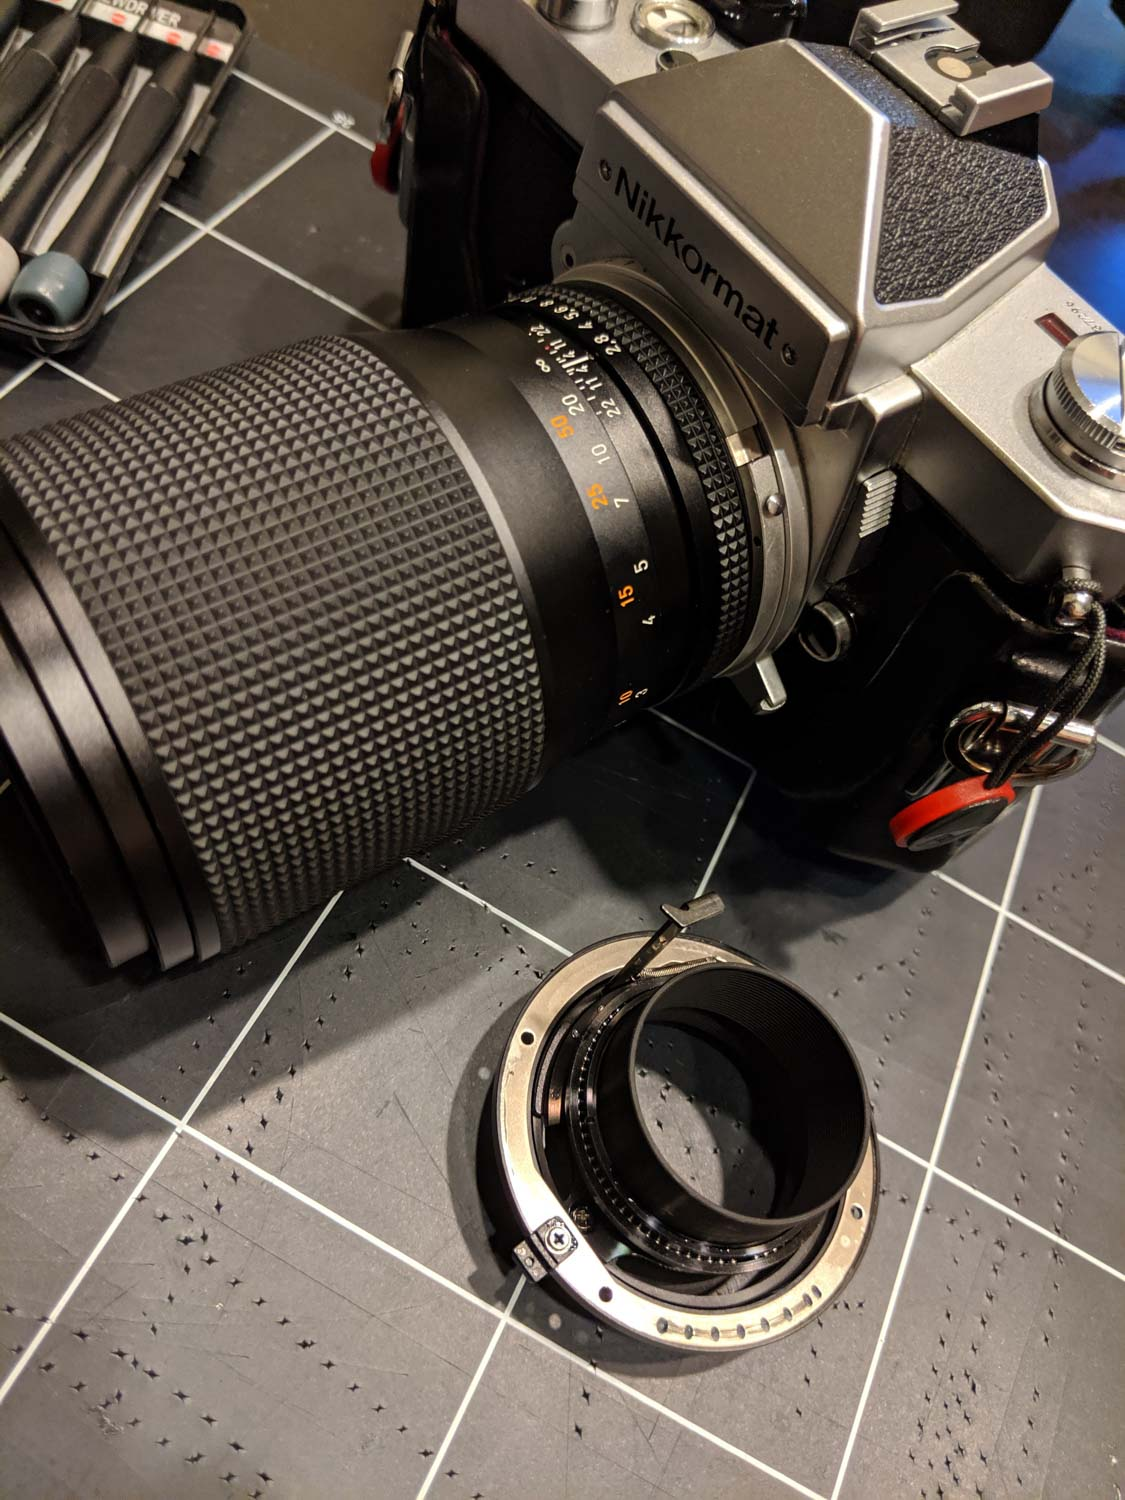 Converting a CY mount Carl Zeiss Sonnar 135mm f/2 lens to Nikon mount